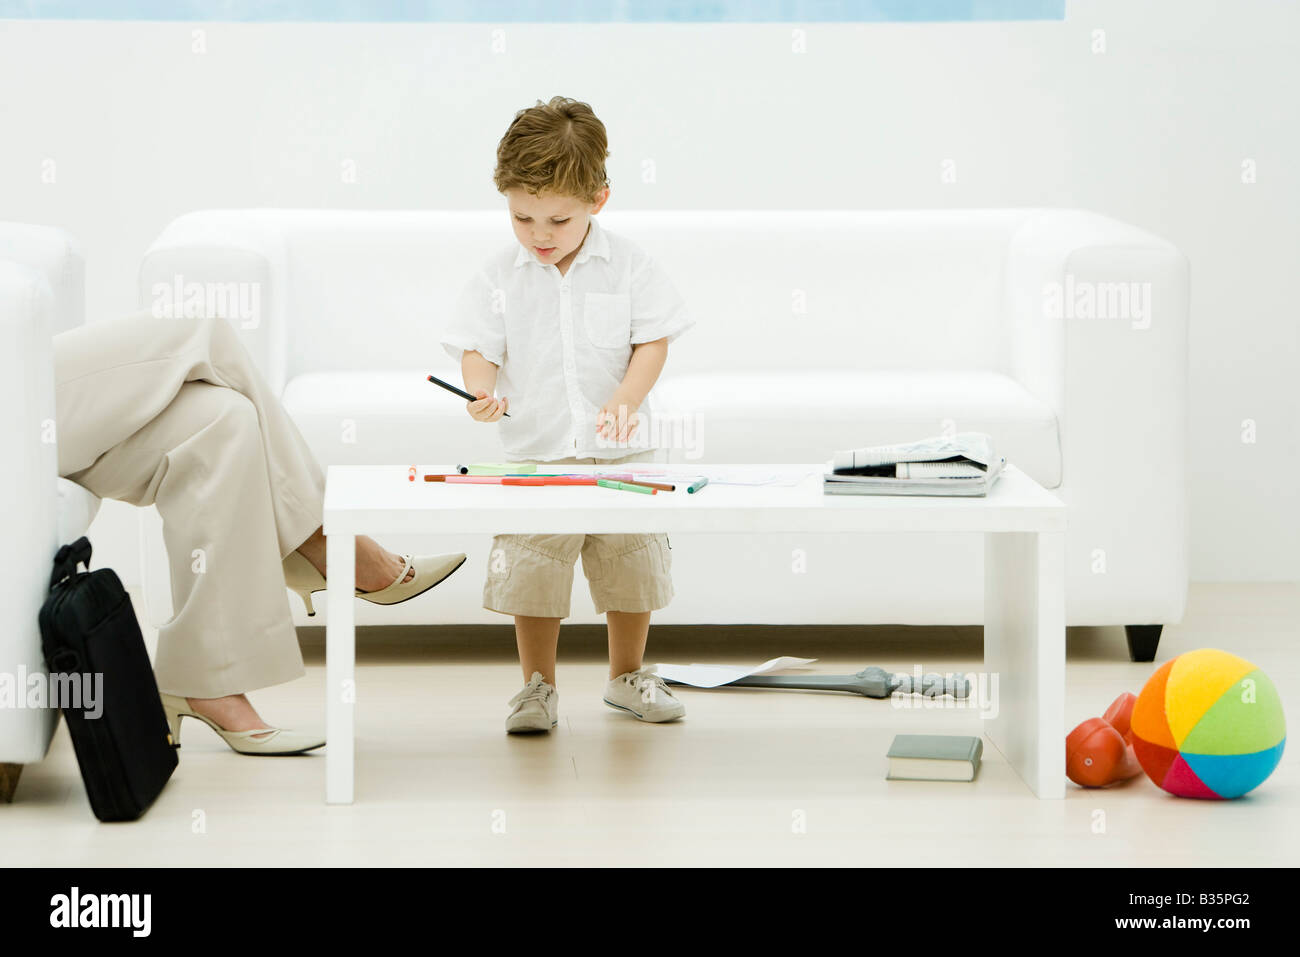 Professional woman and son in waiting room, boy coloring, cropped view - Stock Image